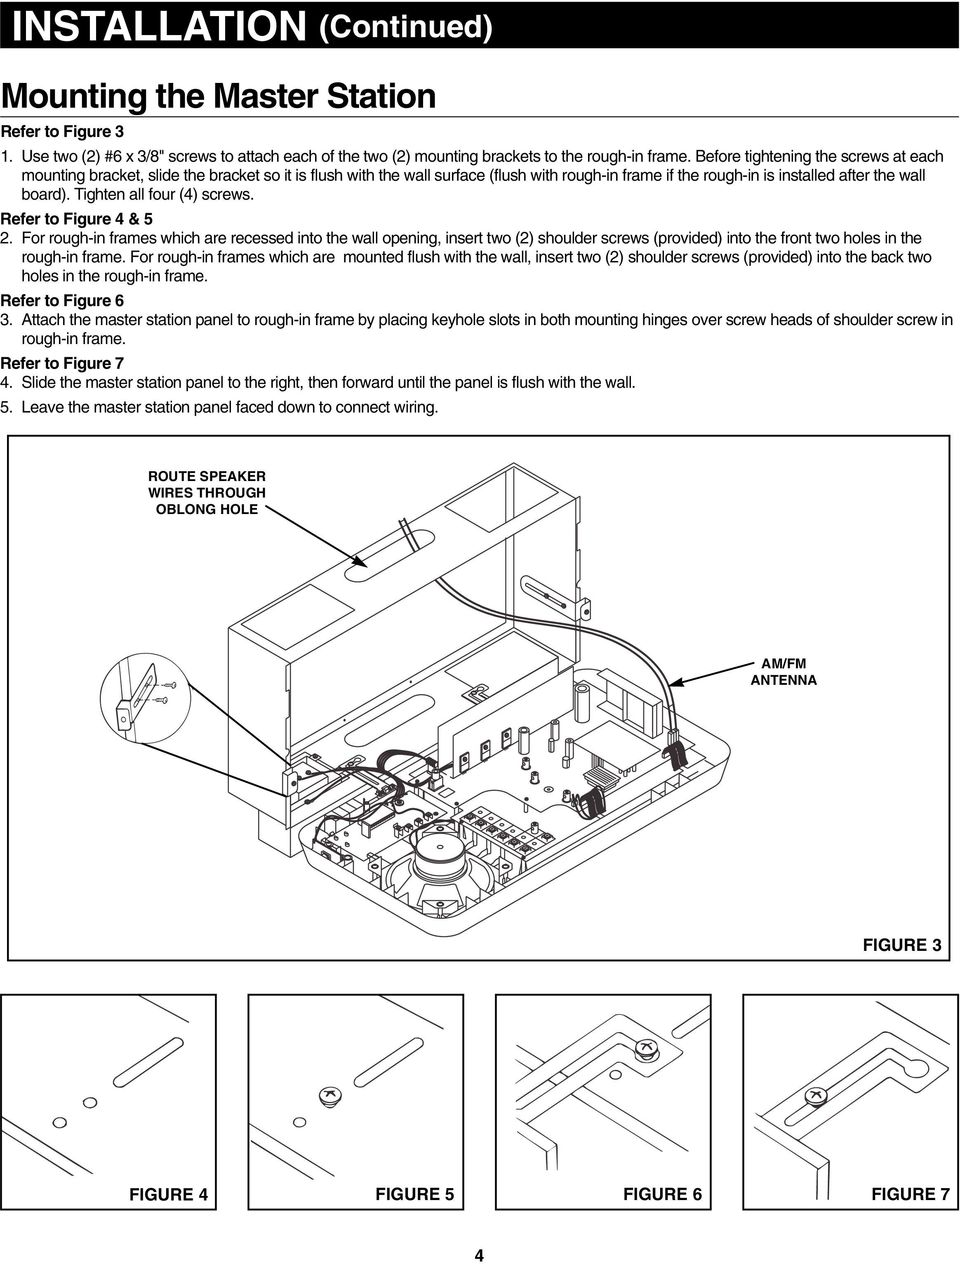 Radio Intercom System Pdf Volume Control Wiring Diagram For Nutone Wall Tighten All Four 4 Screws Refer To Figure 5 2